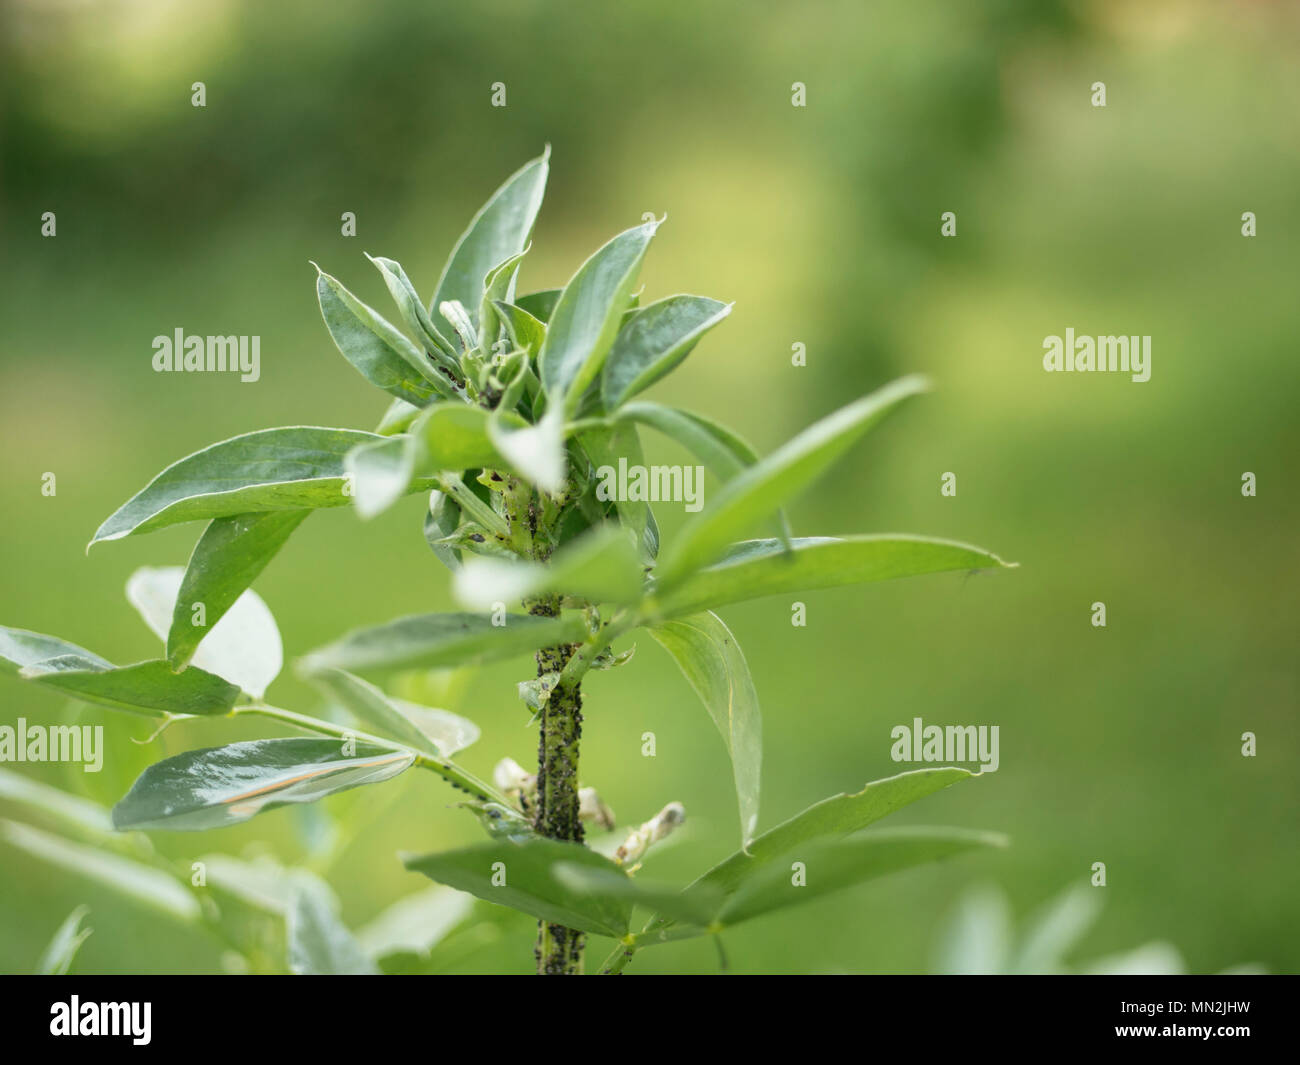 Fava bean plants invested with aphids - Stock Image